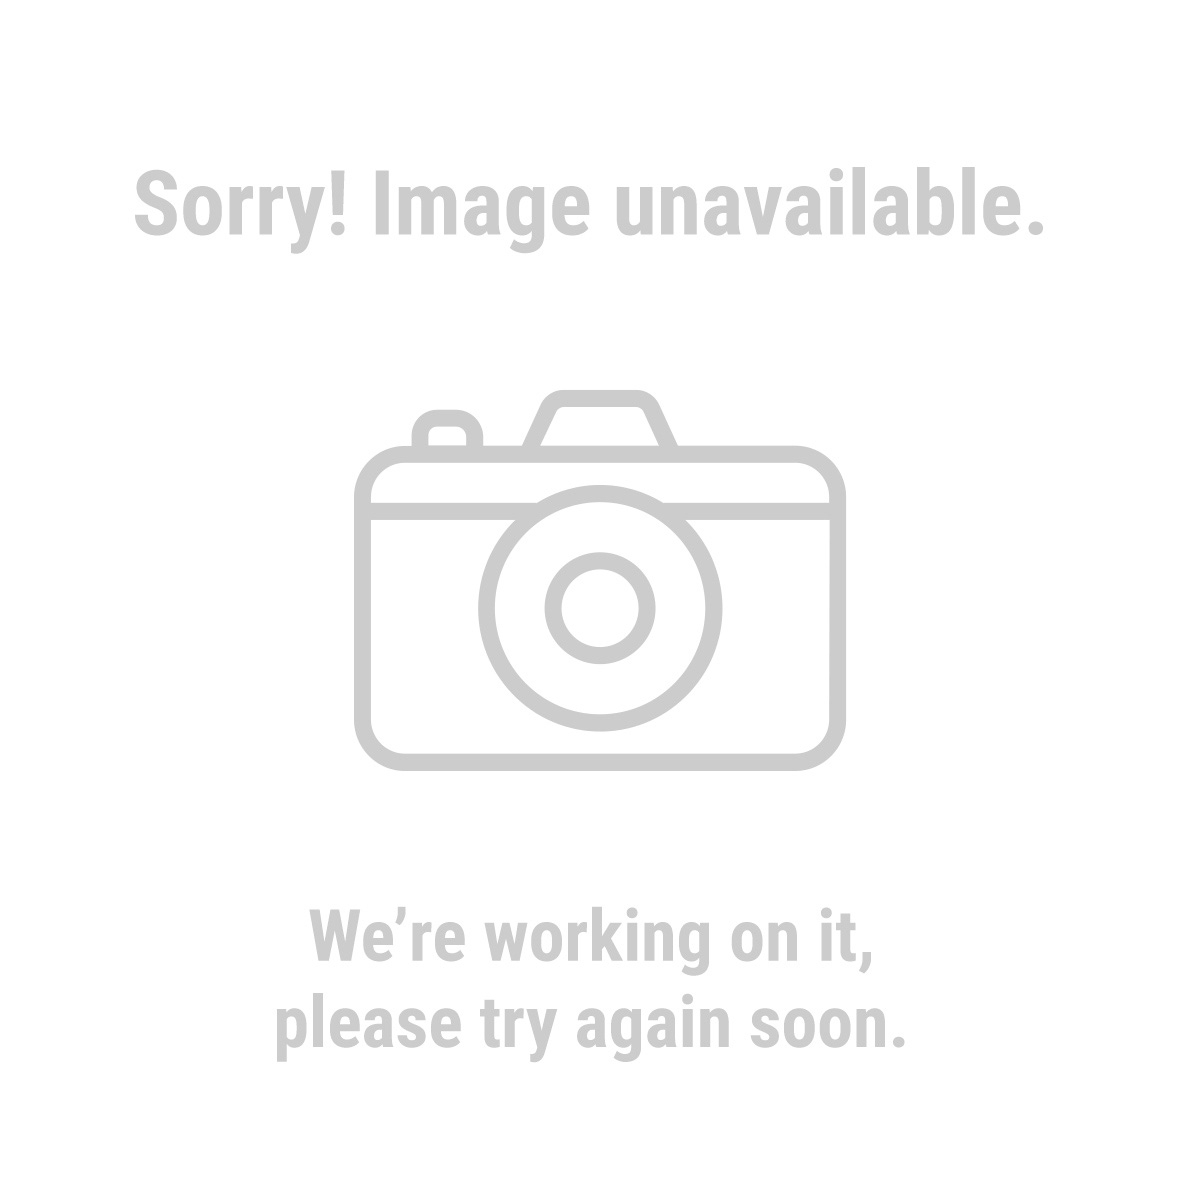 Haul-Master® 62644 600 lb. Auto; 200 lb. Motorcycle Capacity 78 in. Tag-Along Trailer